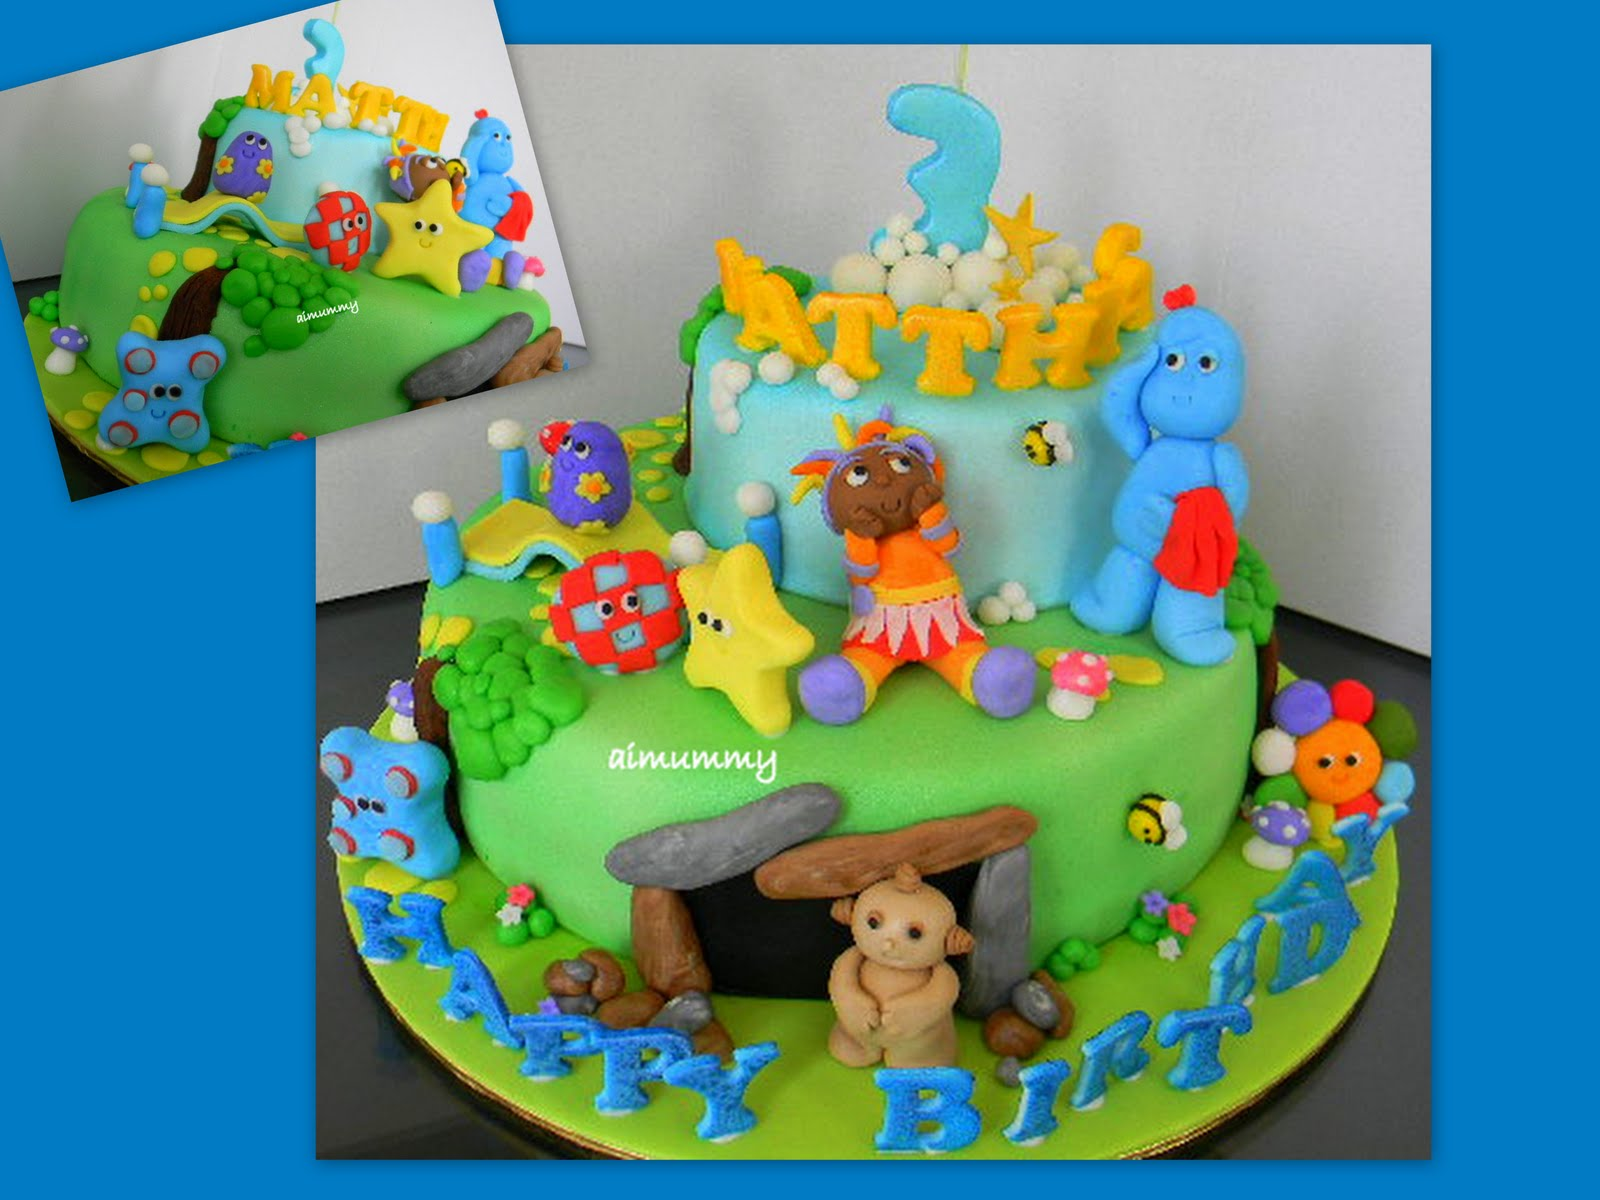 Aimummy in the night garden for In the night garden cakes designs